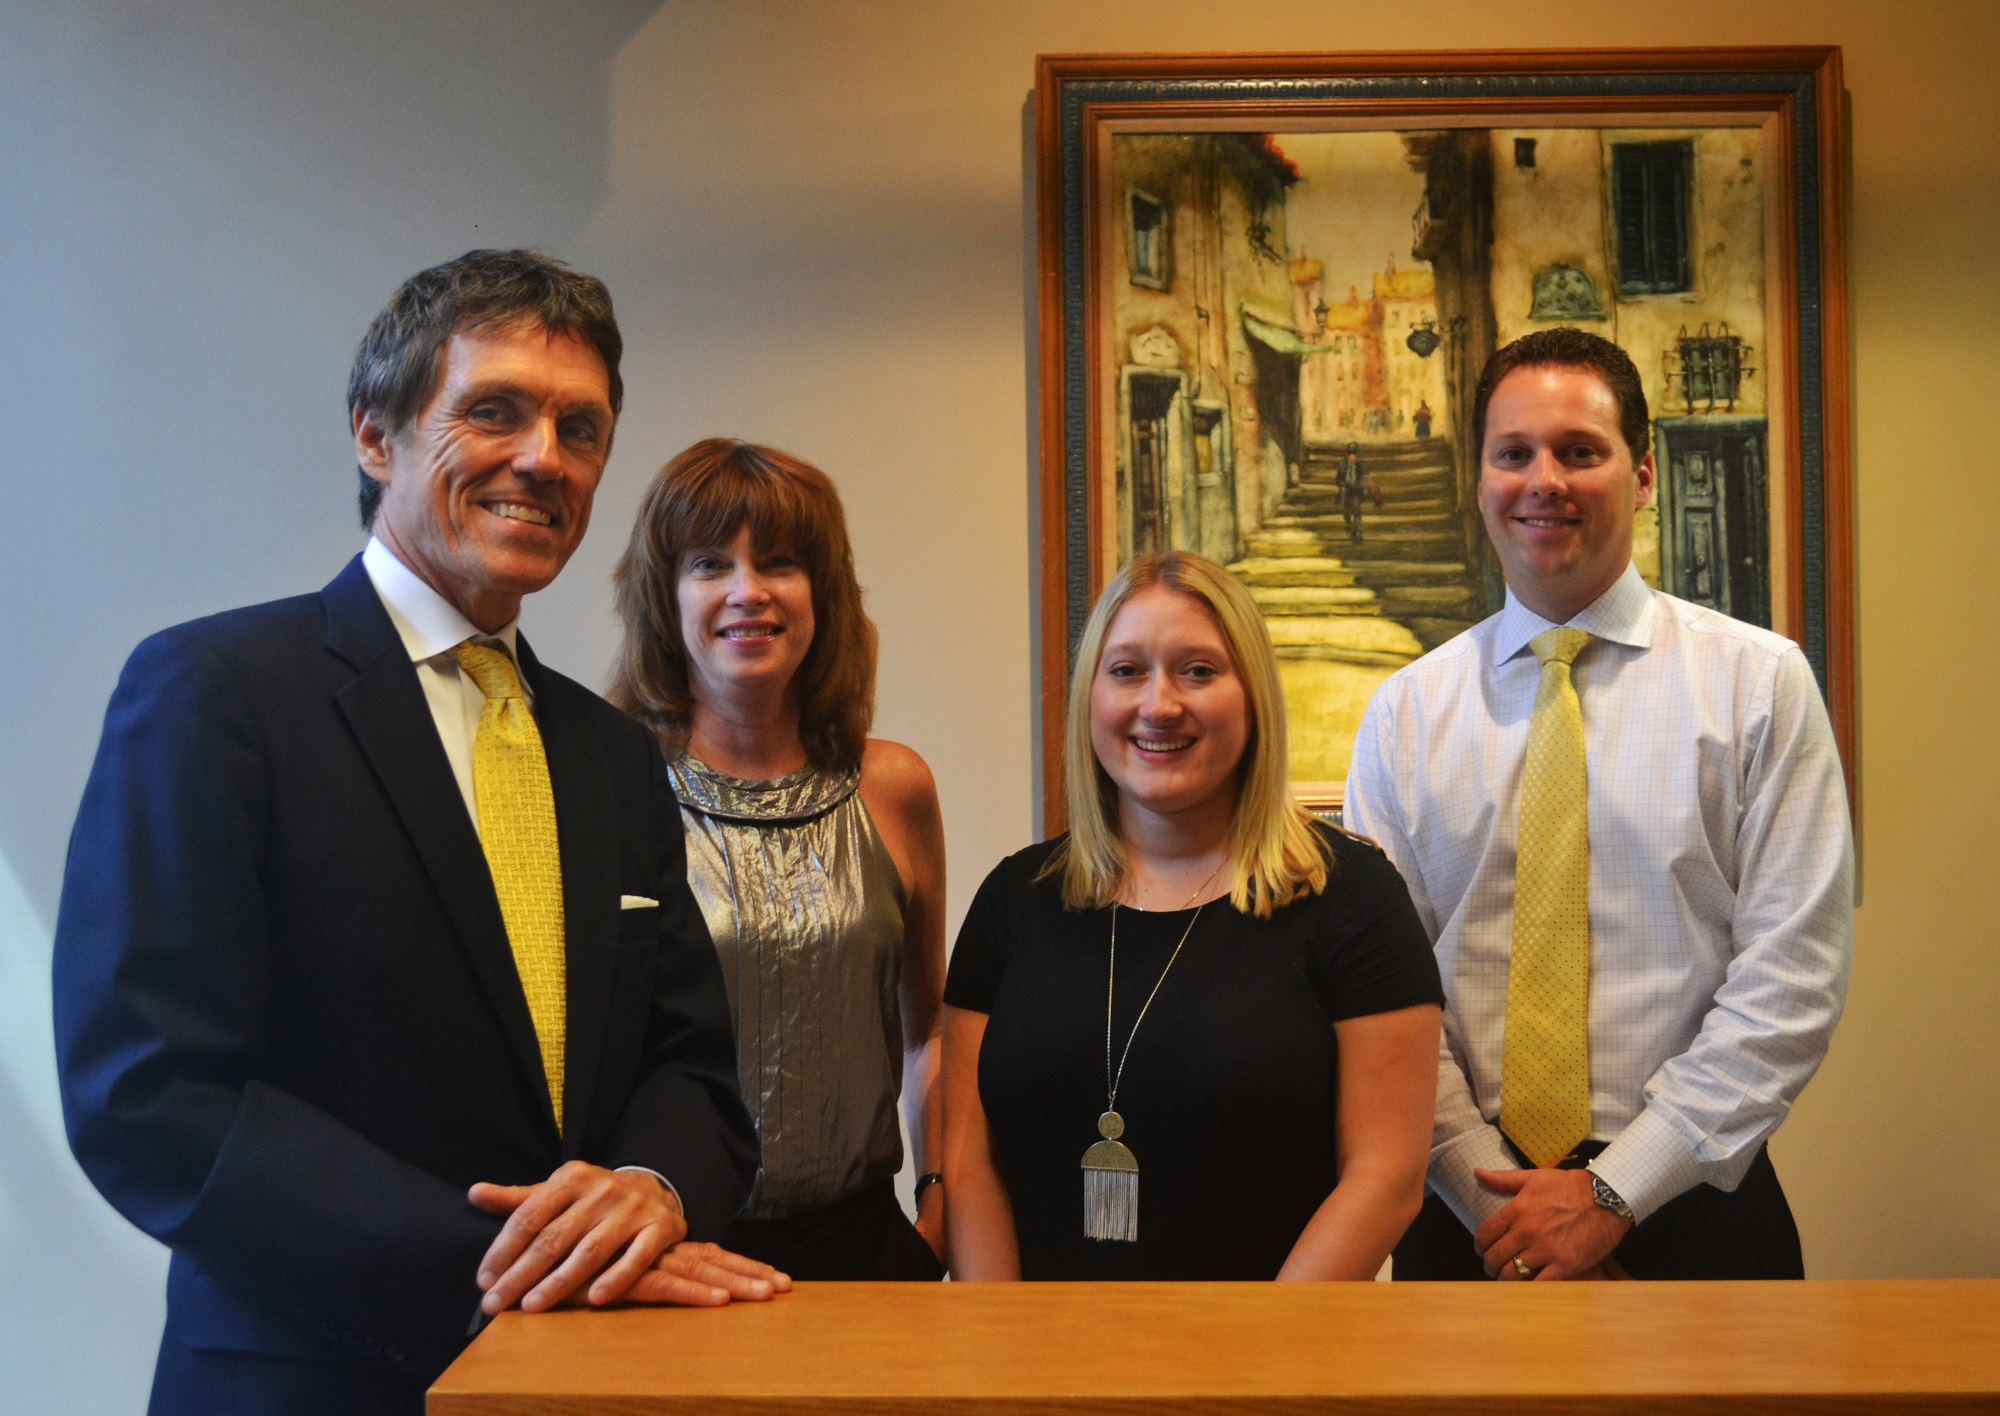 Tuohy Law Offices team